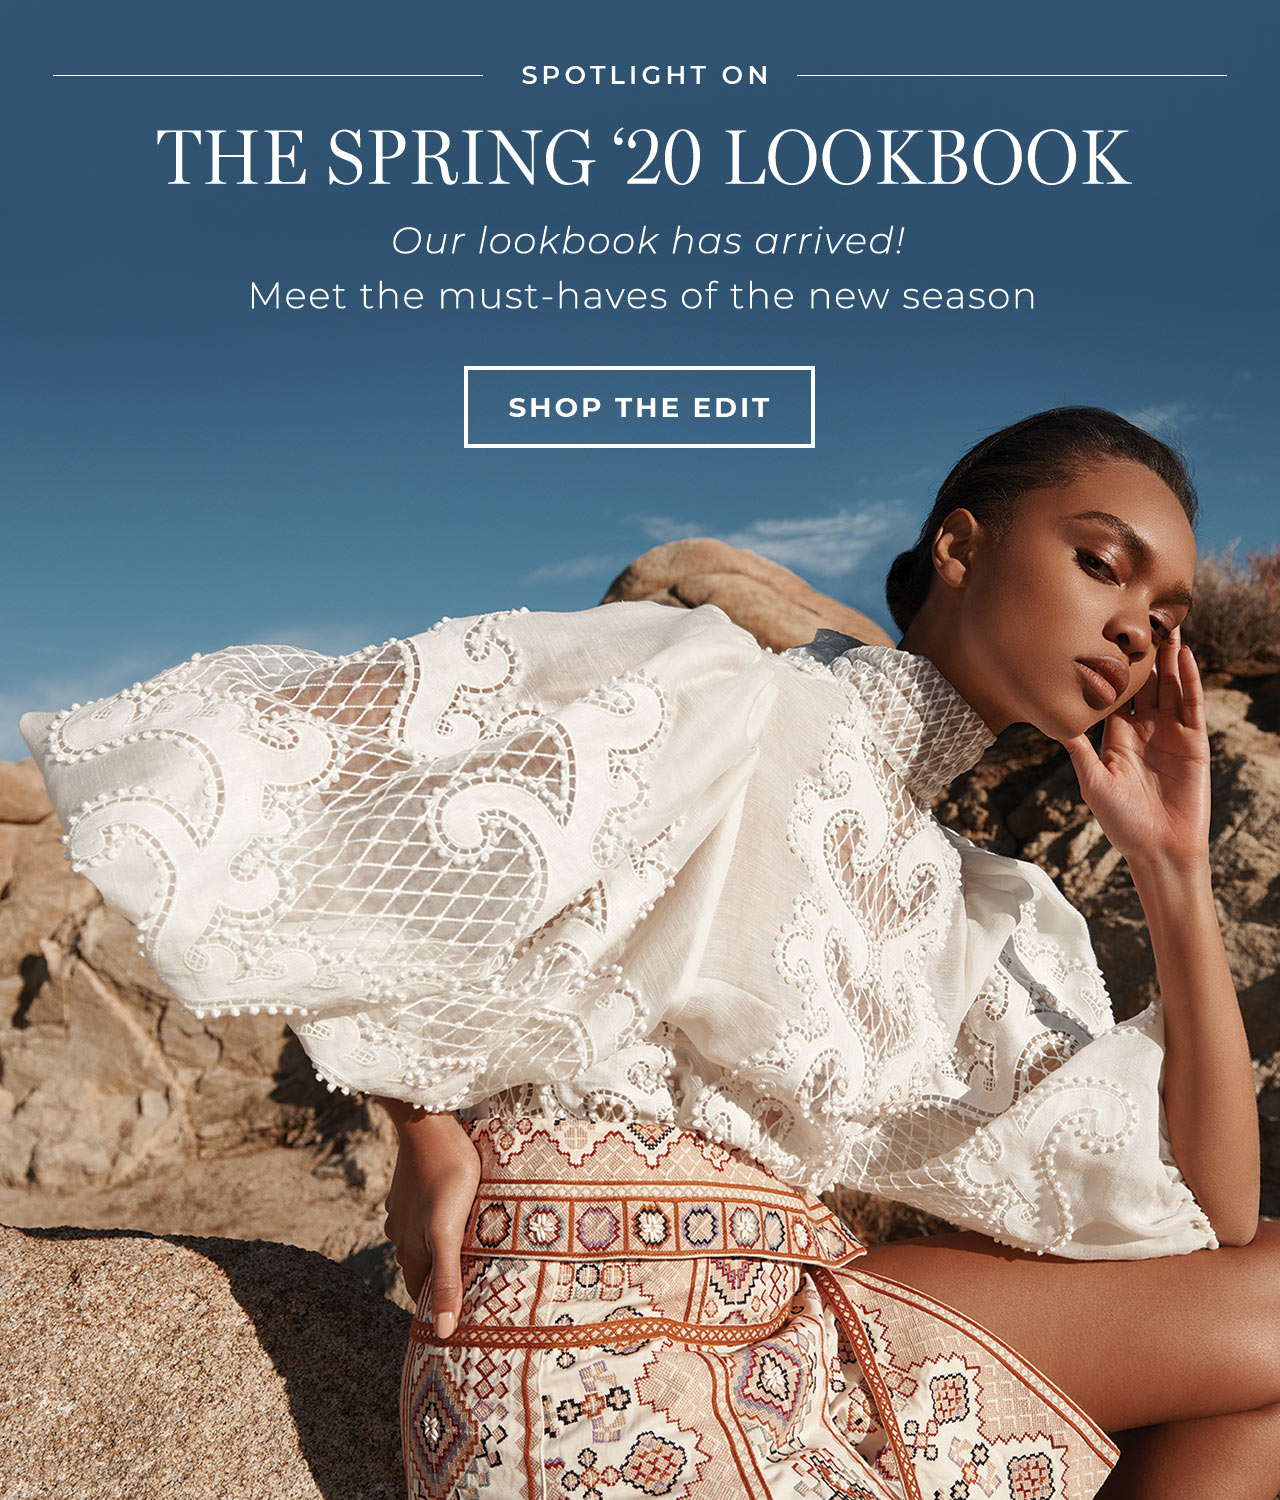 The Spring 2020 lookbooks has arrived. Meet the must-haves of the new season